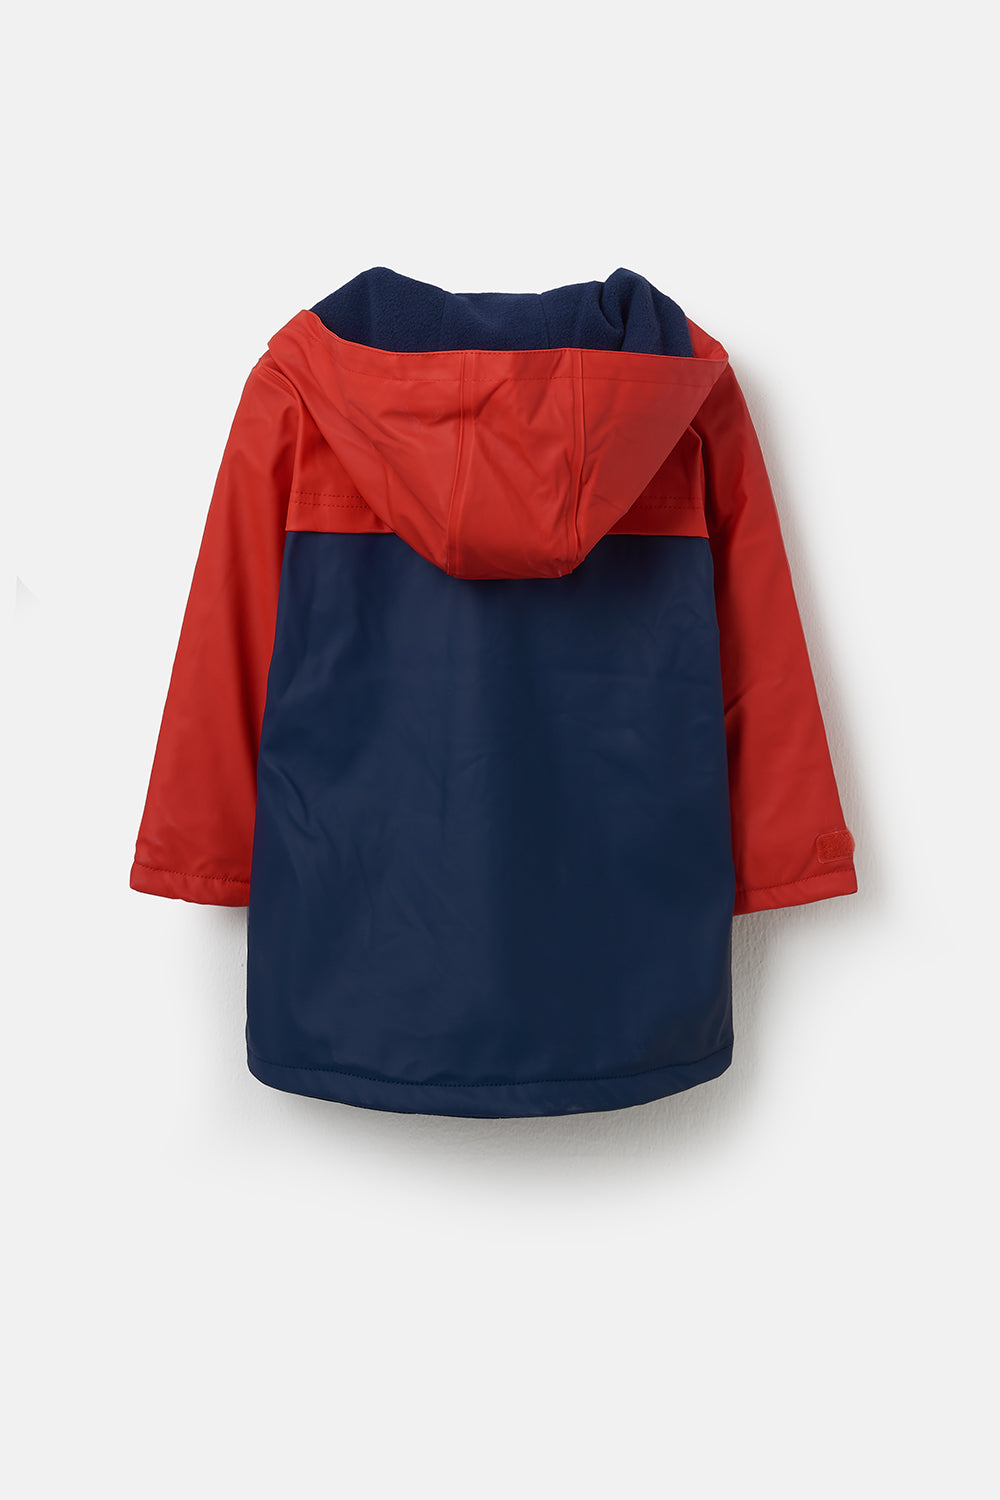 Lighthouse Adam Boys Waterproof Rubber Raincoat - Red